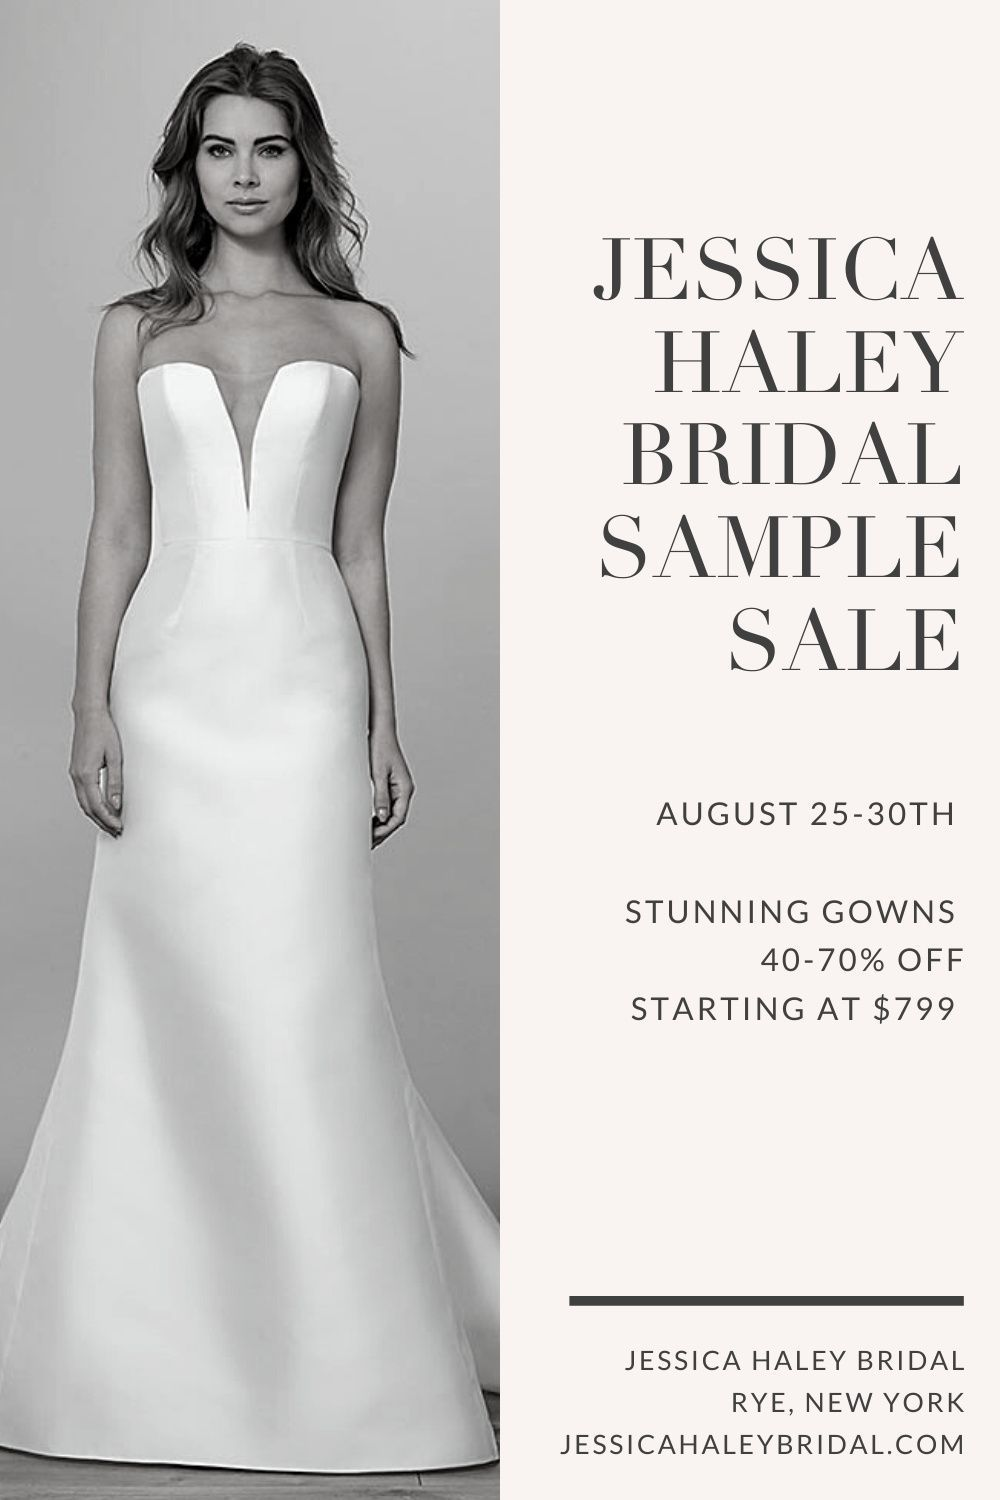 Bridal Sample Sale Designer Gown 40 70 Off For A Limited Time In 2020 Designer Wedding Gowns Stunning Gowns Gowns,Wedding Dresses In Oklahoma City